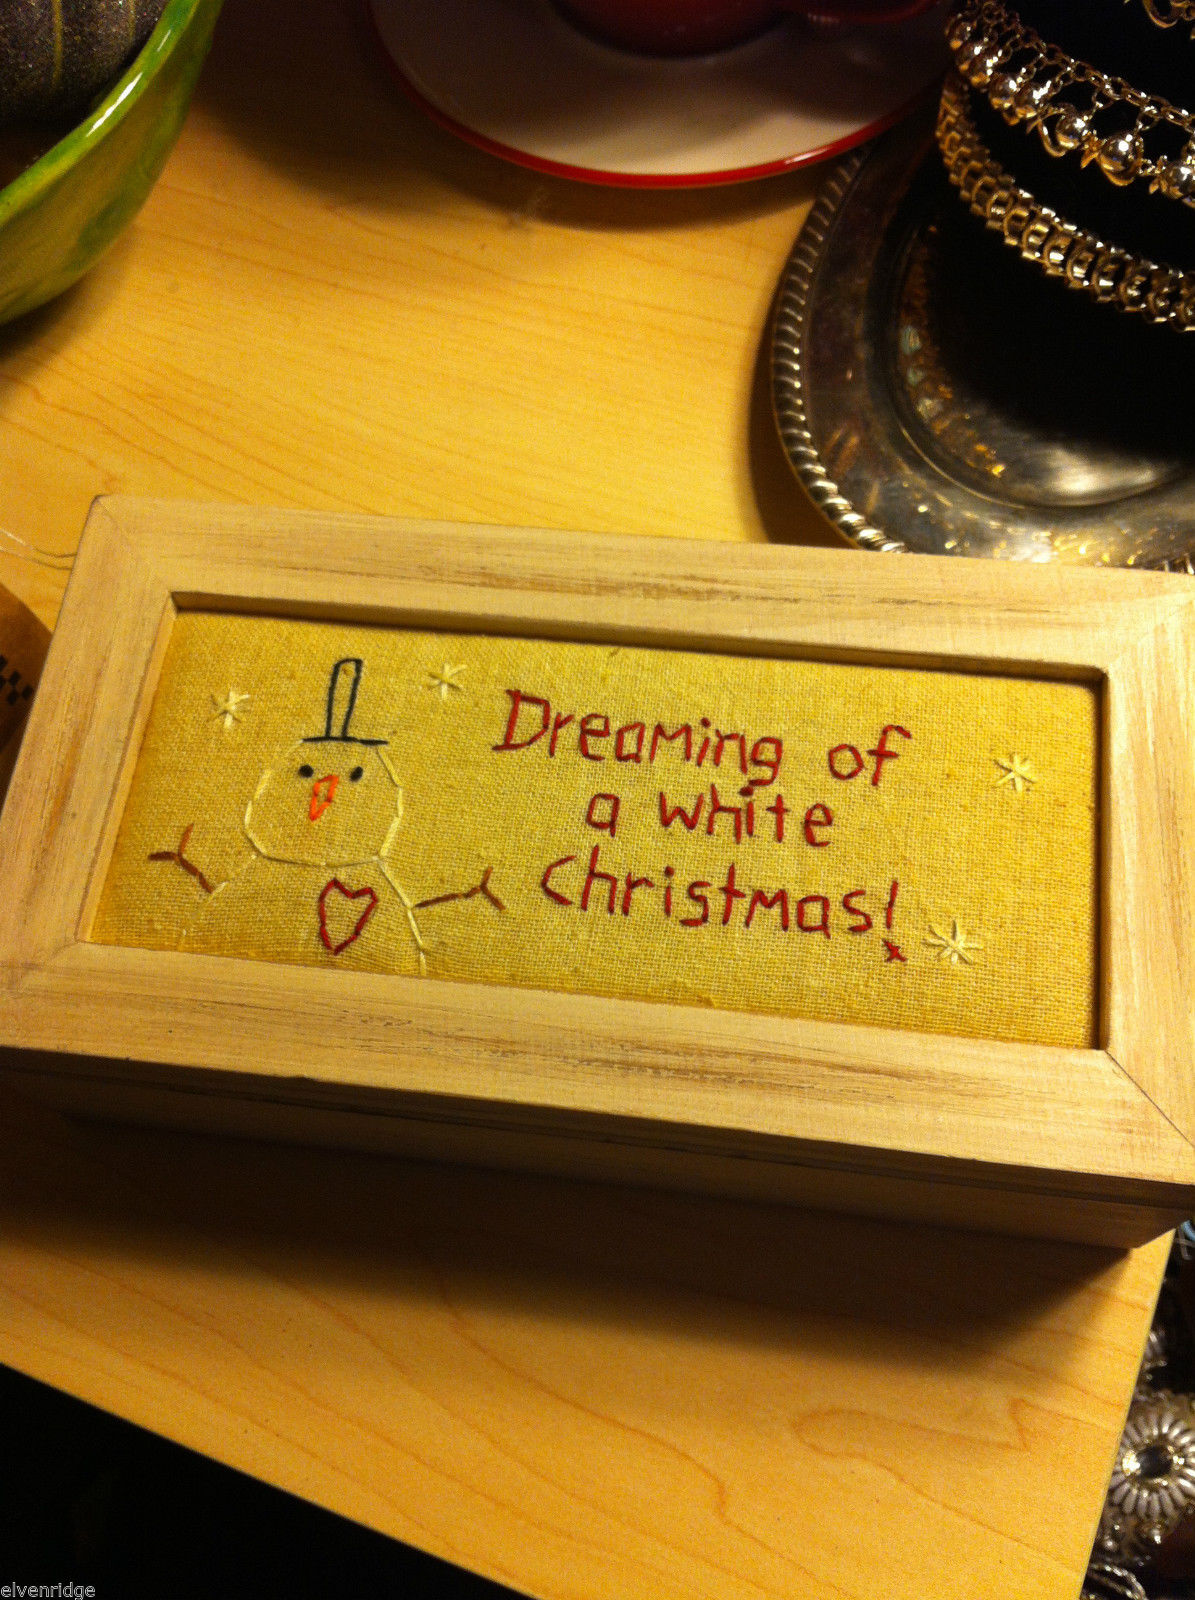 Wooden Gift Box w Stitching Top Dreaming of a White Christmas holds gift gloves